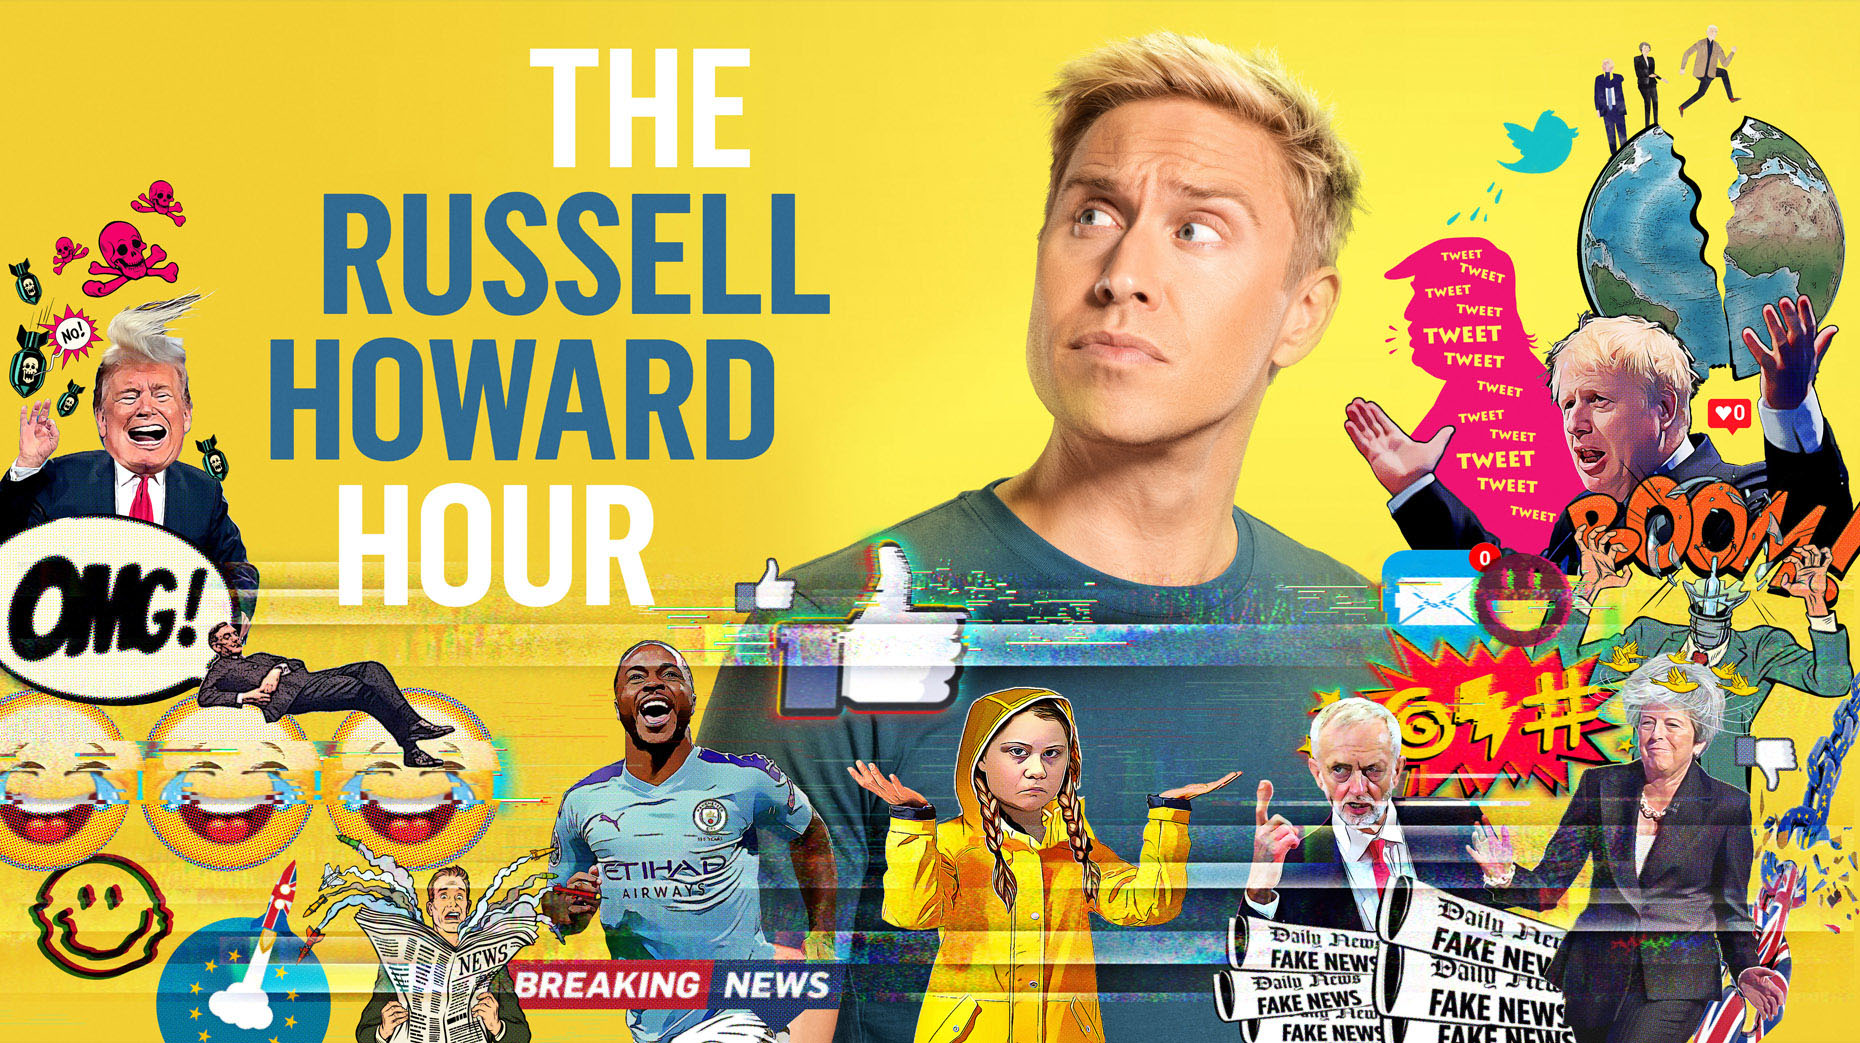 KA_01_TheRussellHowardHour_S03